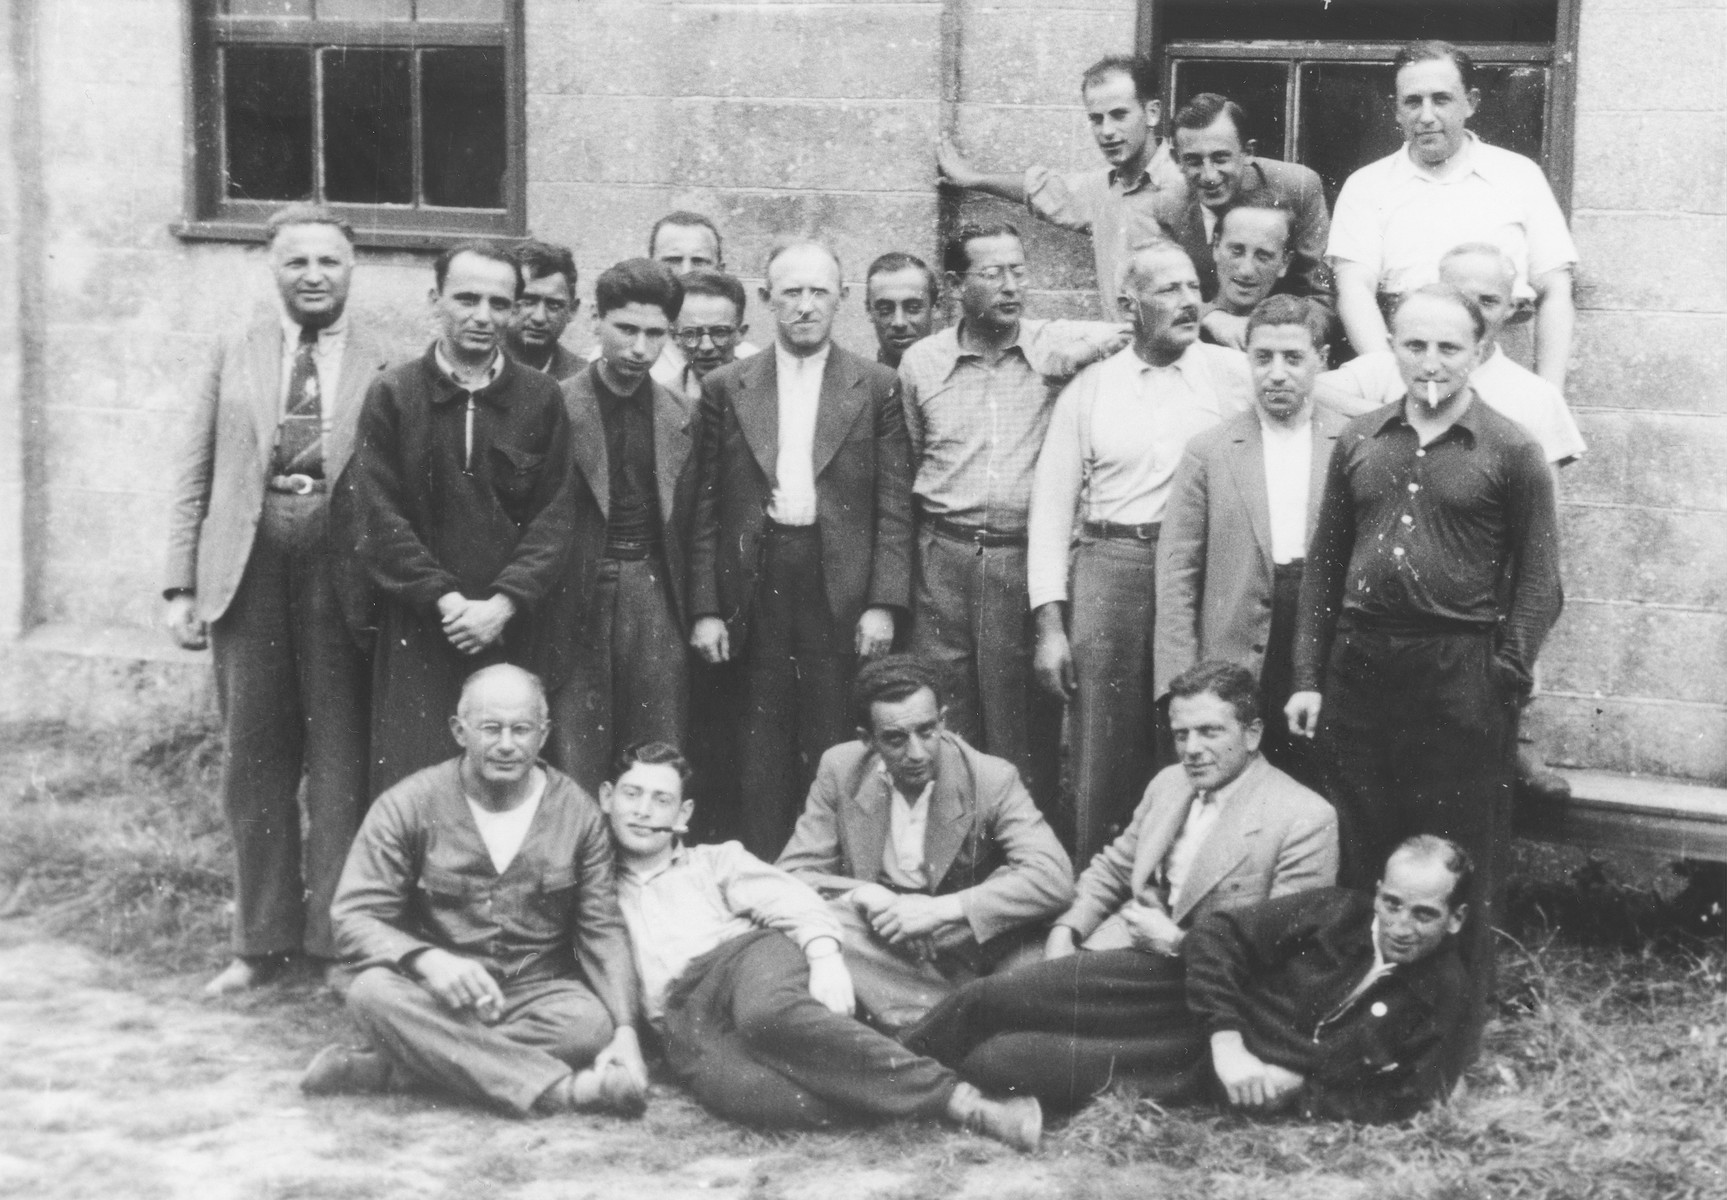 Group portrait of Jewish refugees from Germany and Austria in the Kitchener refugee camp in Richborough (Kent), England.  Herbert Mosheim is standing in the middle of the top row.